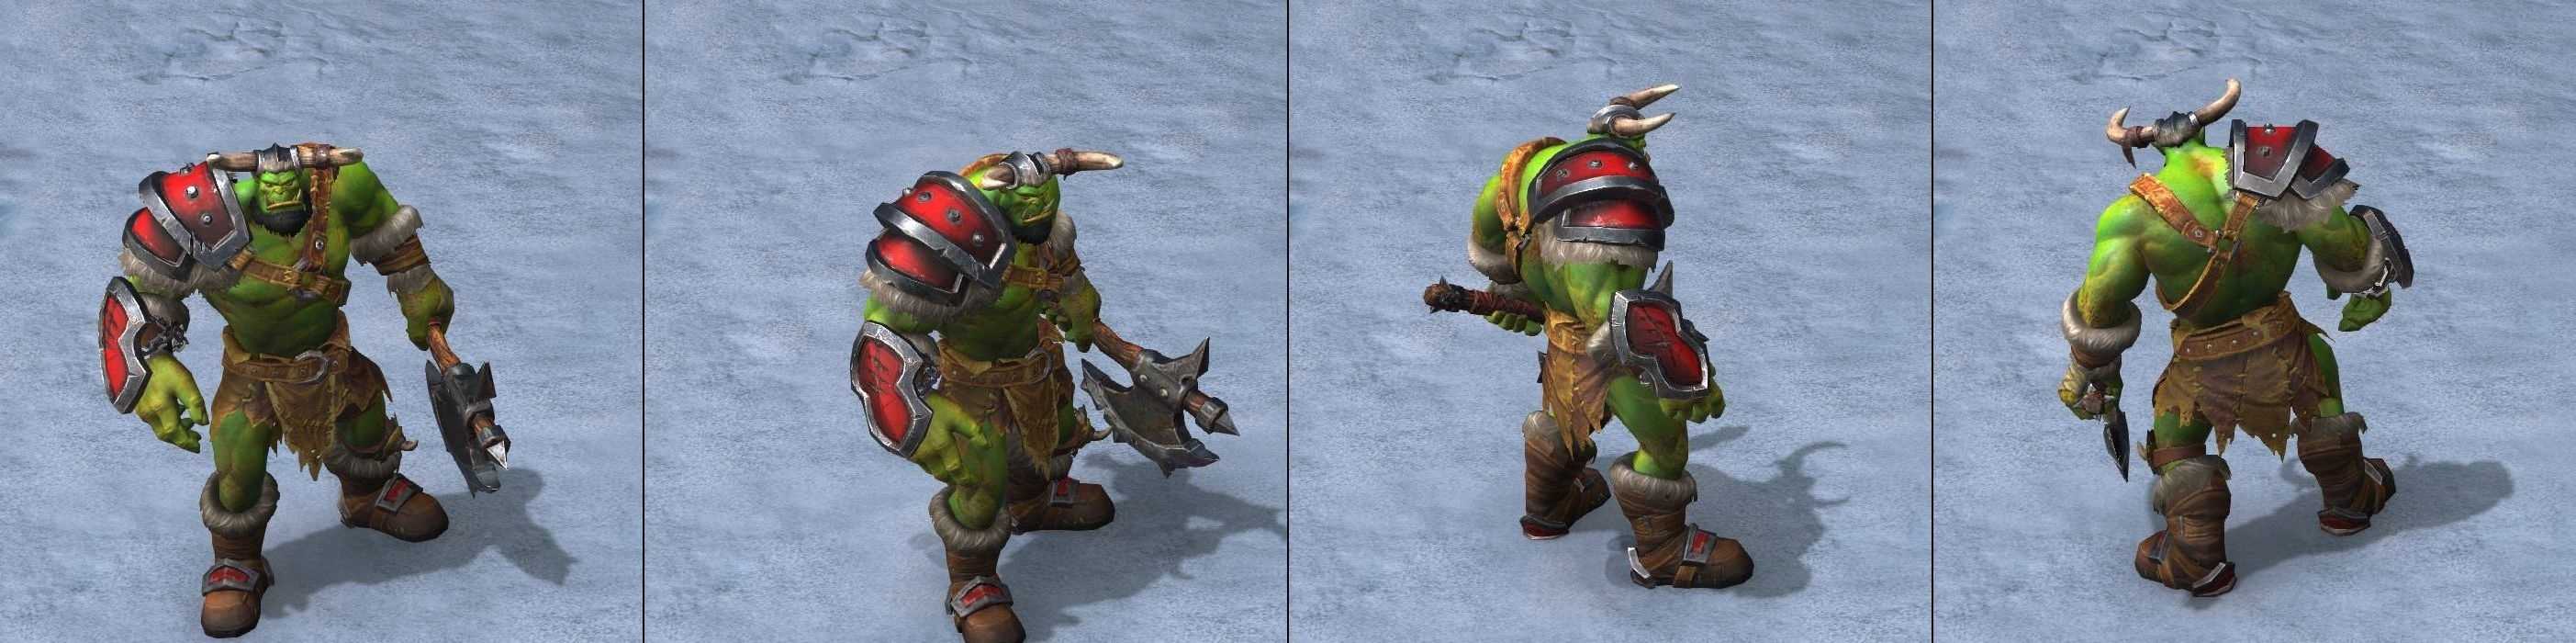 Warcraft Iii Reforged Orc Unit And Hero Models Wowhead News